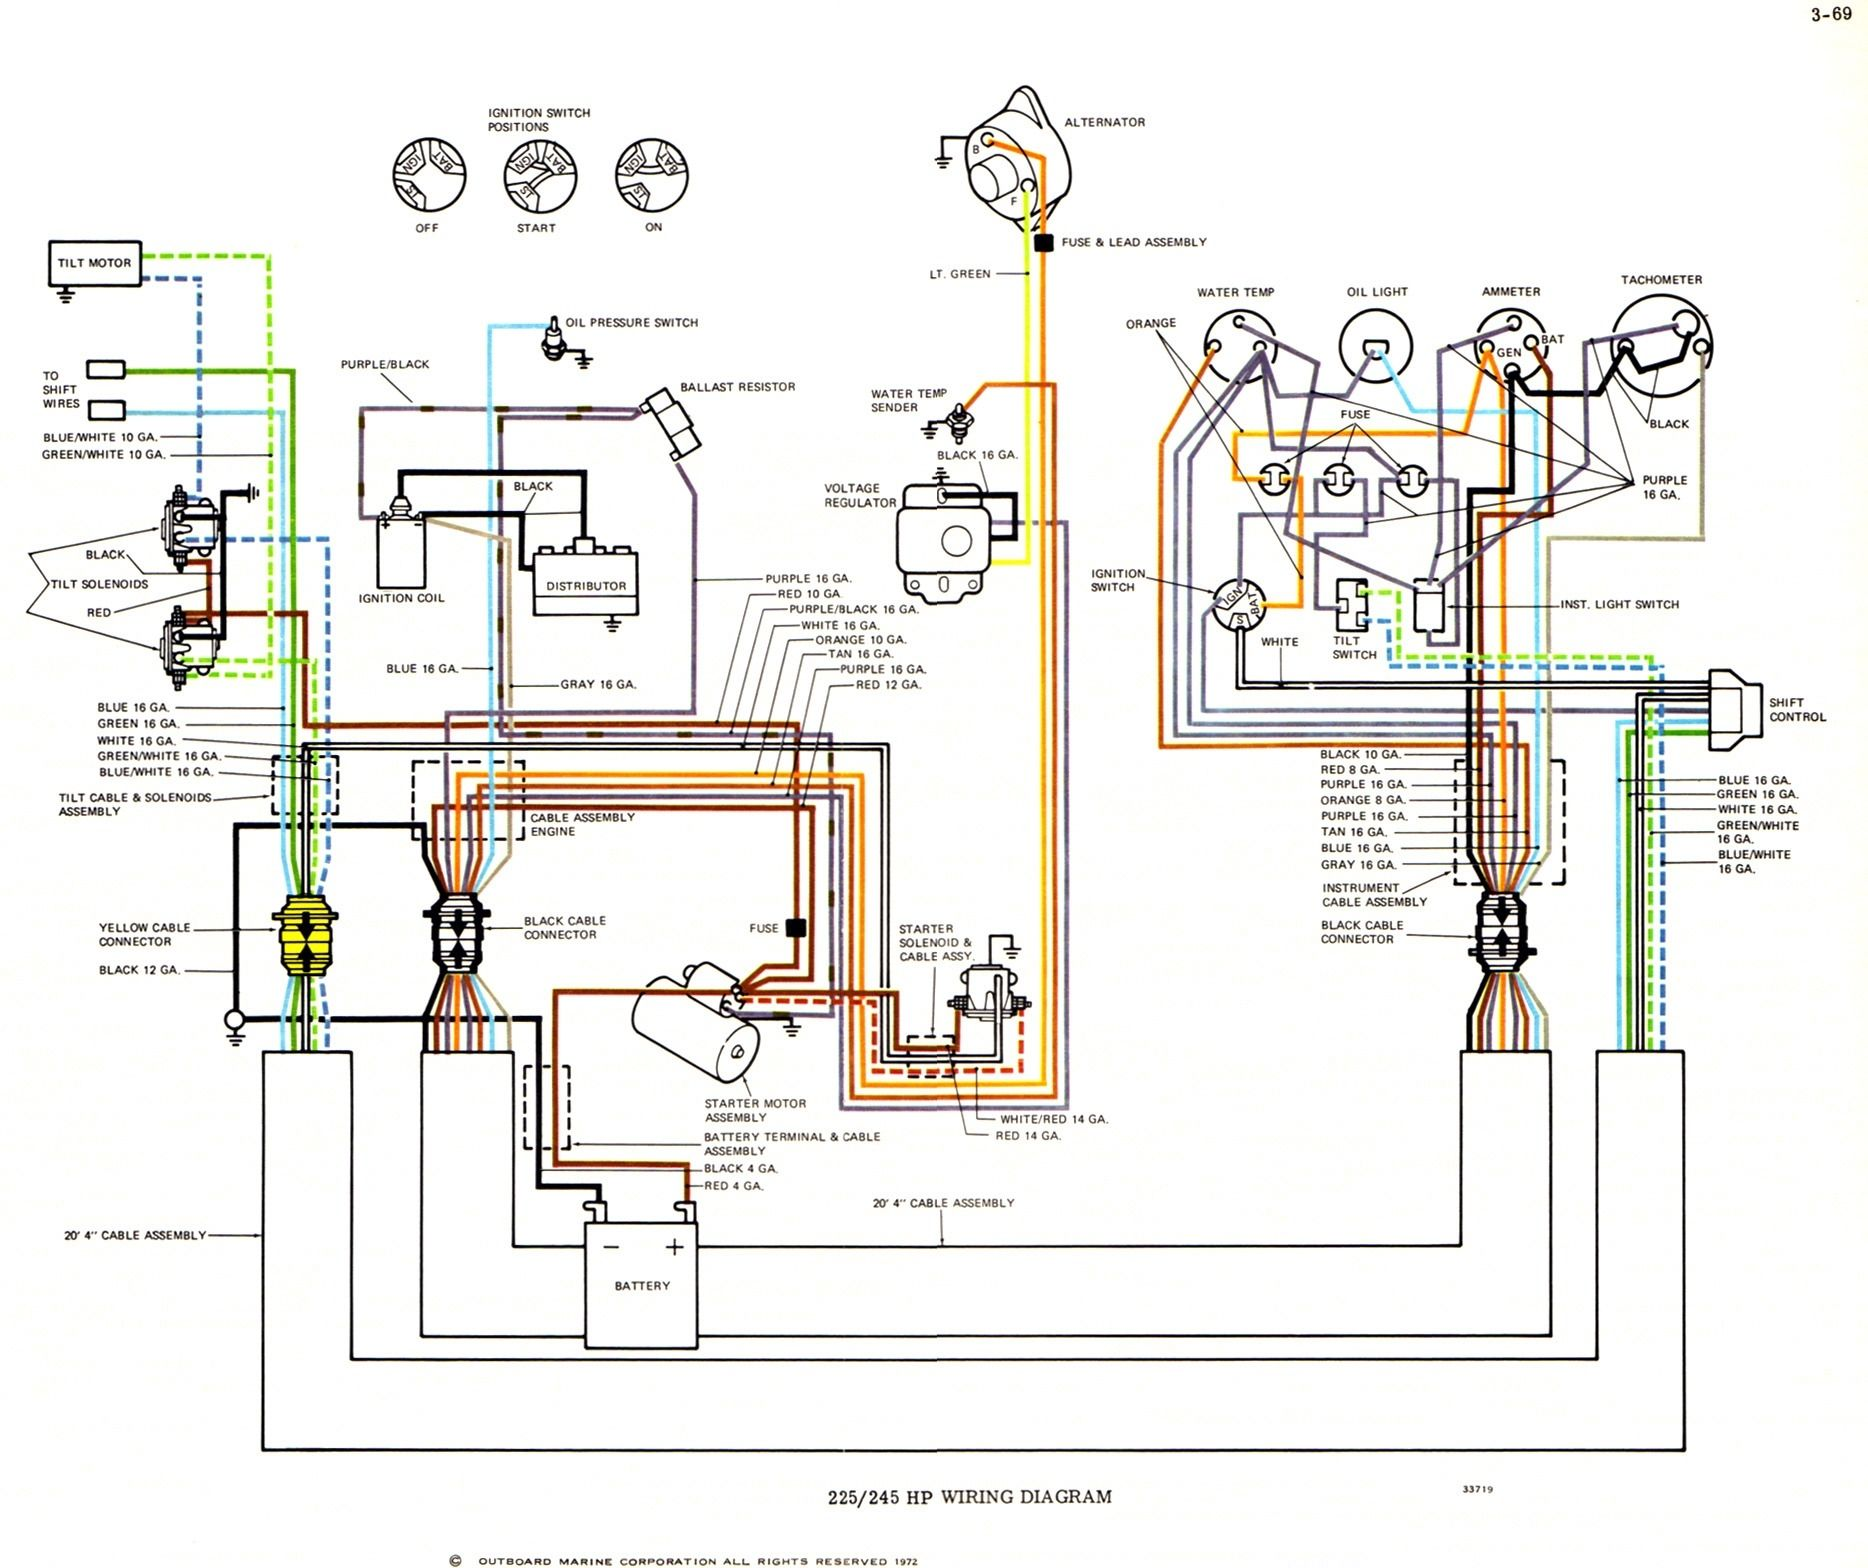 Yamaha Outboard Electrical Wiring Diagram | WiringDiagram